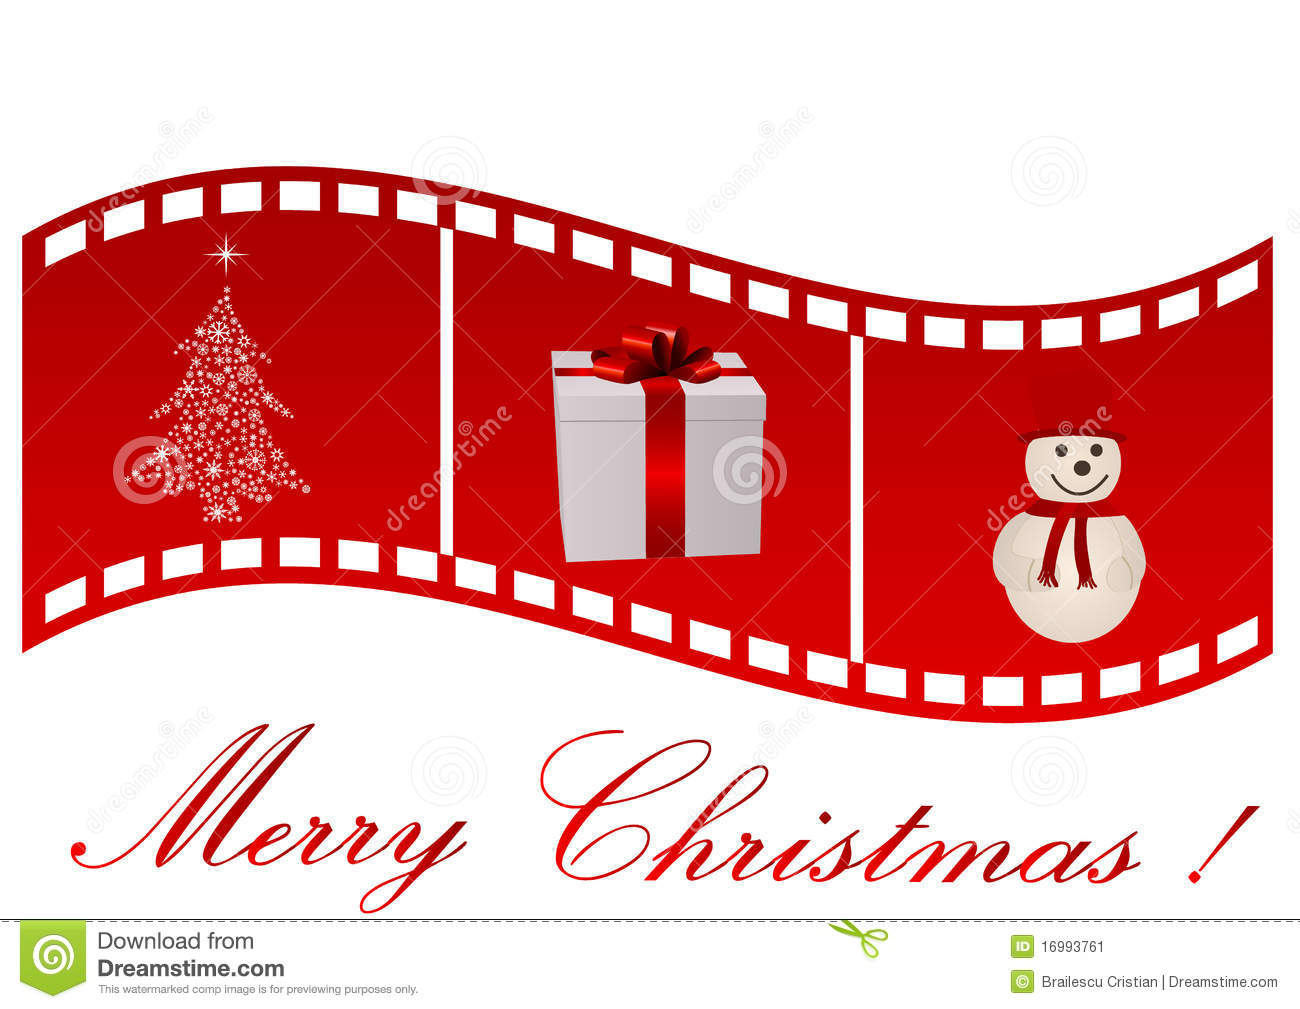 Free Christmas Movie Cliparts, Download Free Clip Art, Free Clip Art.